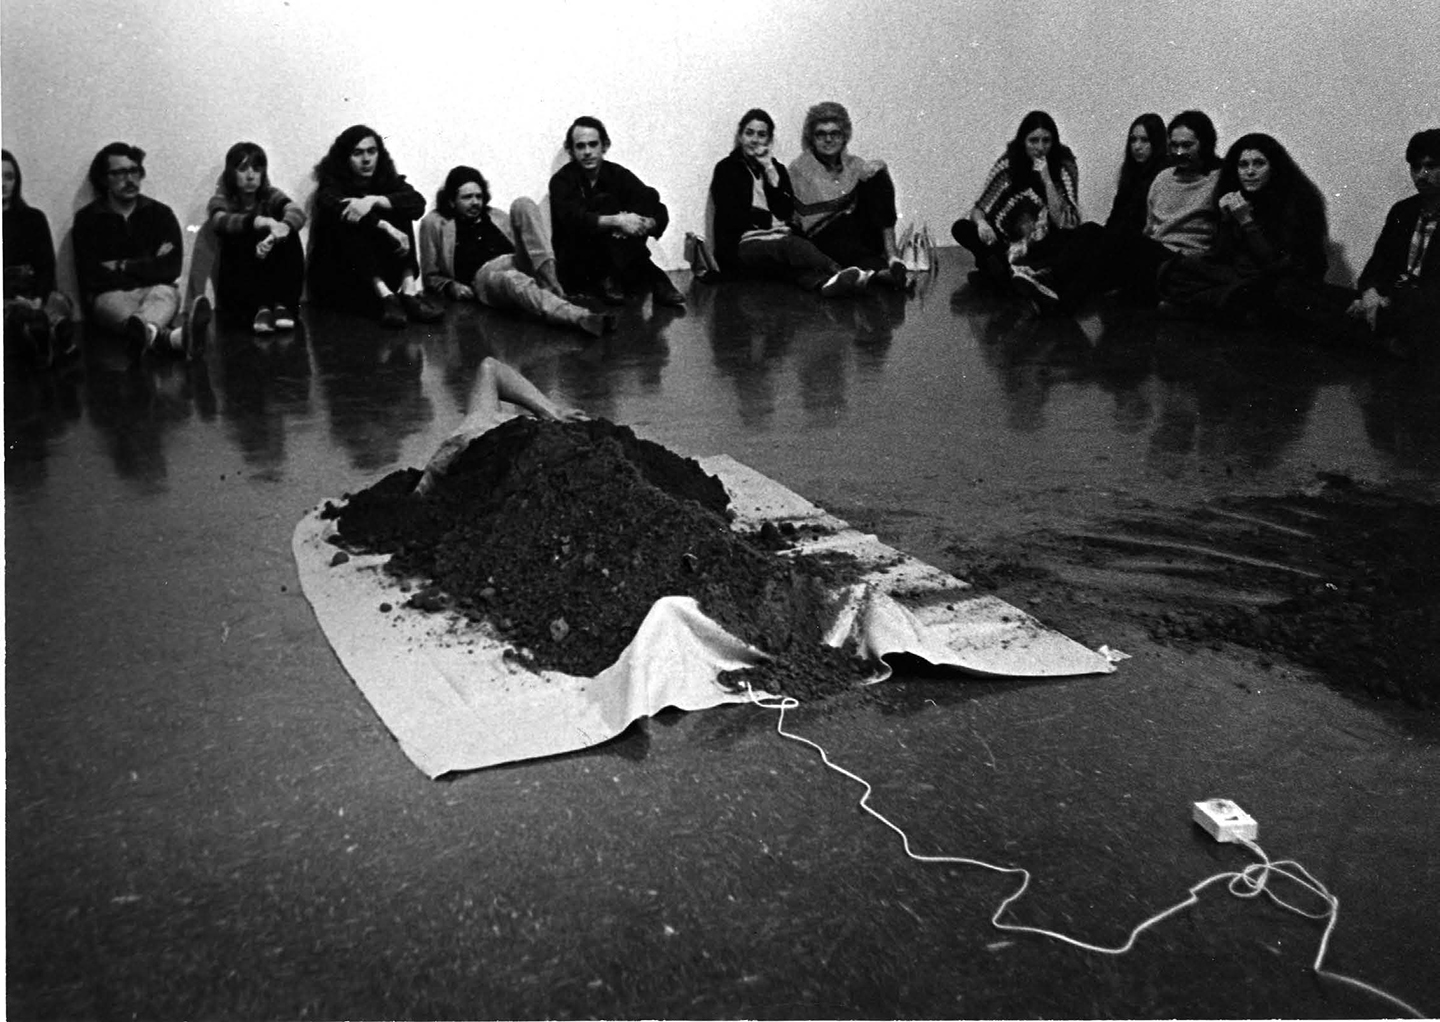 Hirokazu Kosaka, Untitled, 1972, performance at Pomona College Museum of Art, Claremont, 1972. Courtesy: the artist